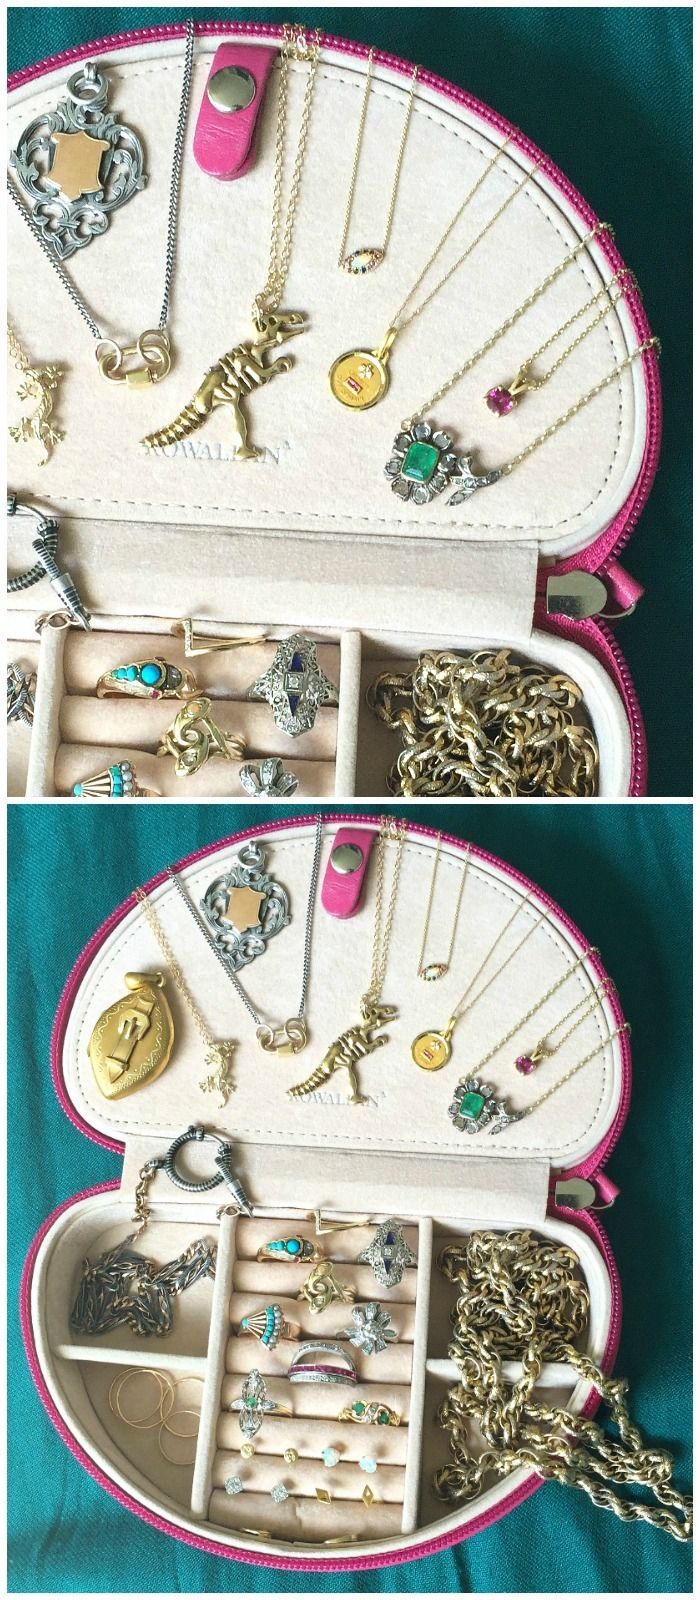 My #jewelryuniform - the daily favorites I reach for over and over in my own jew...